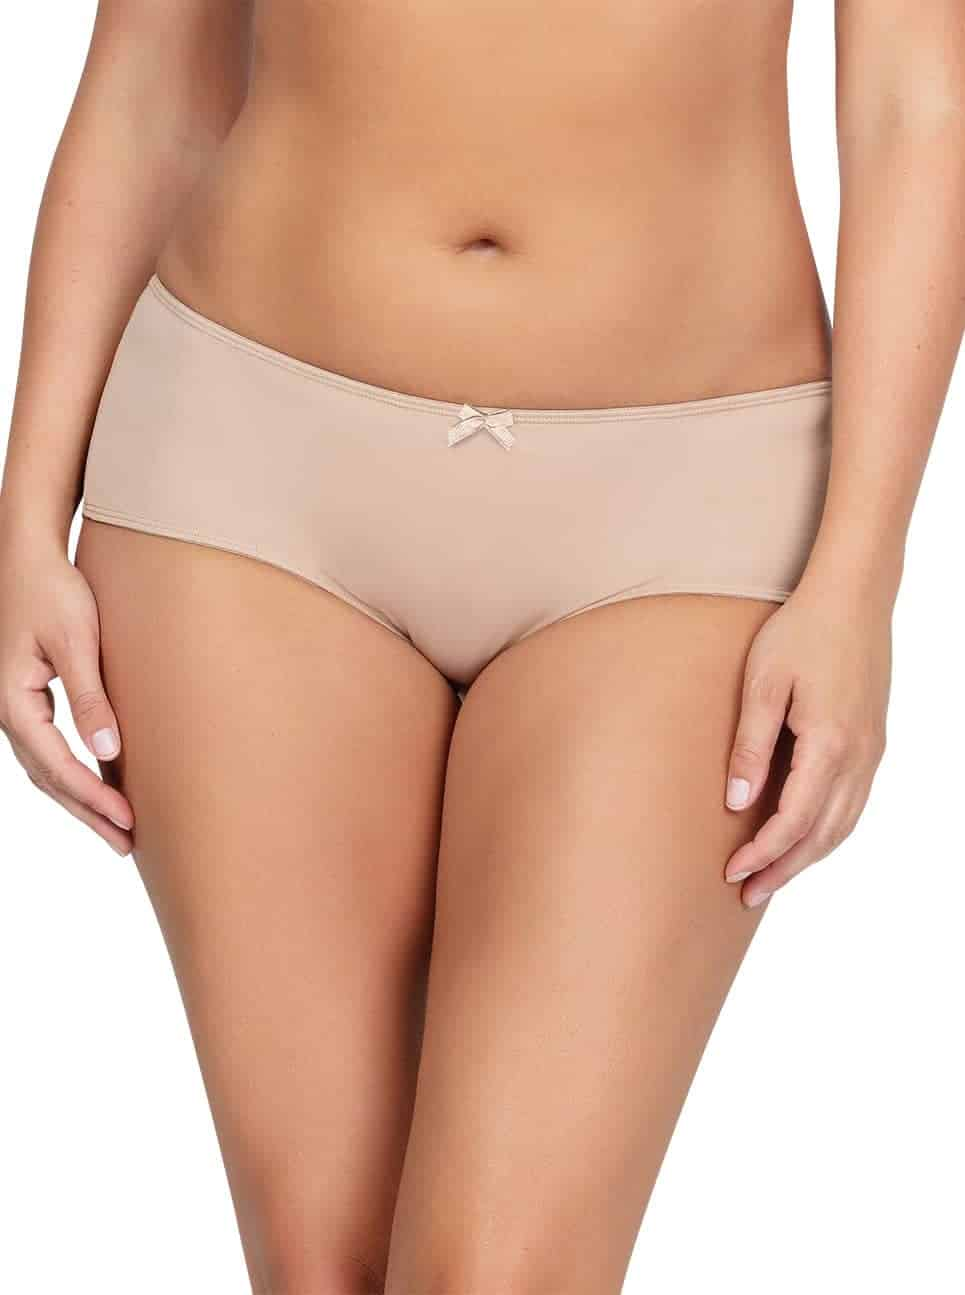 Emma HipsterP5495 Bare front - Emma Hipster - Bare - P5495